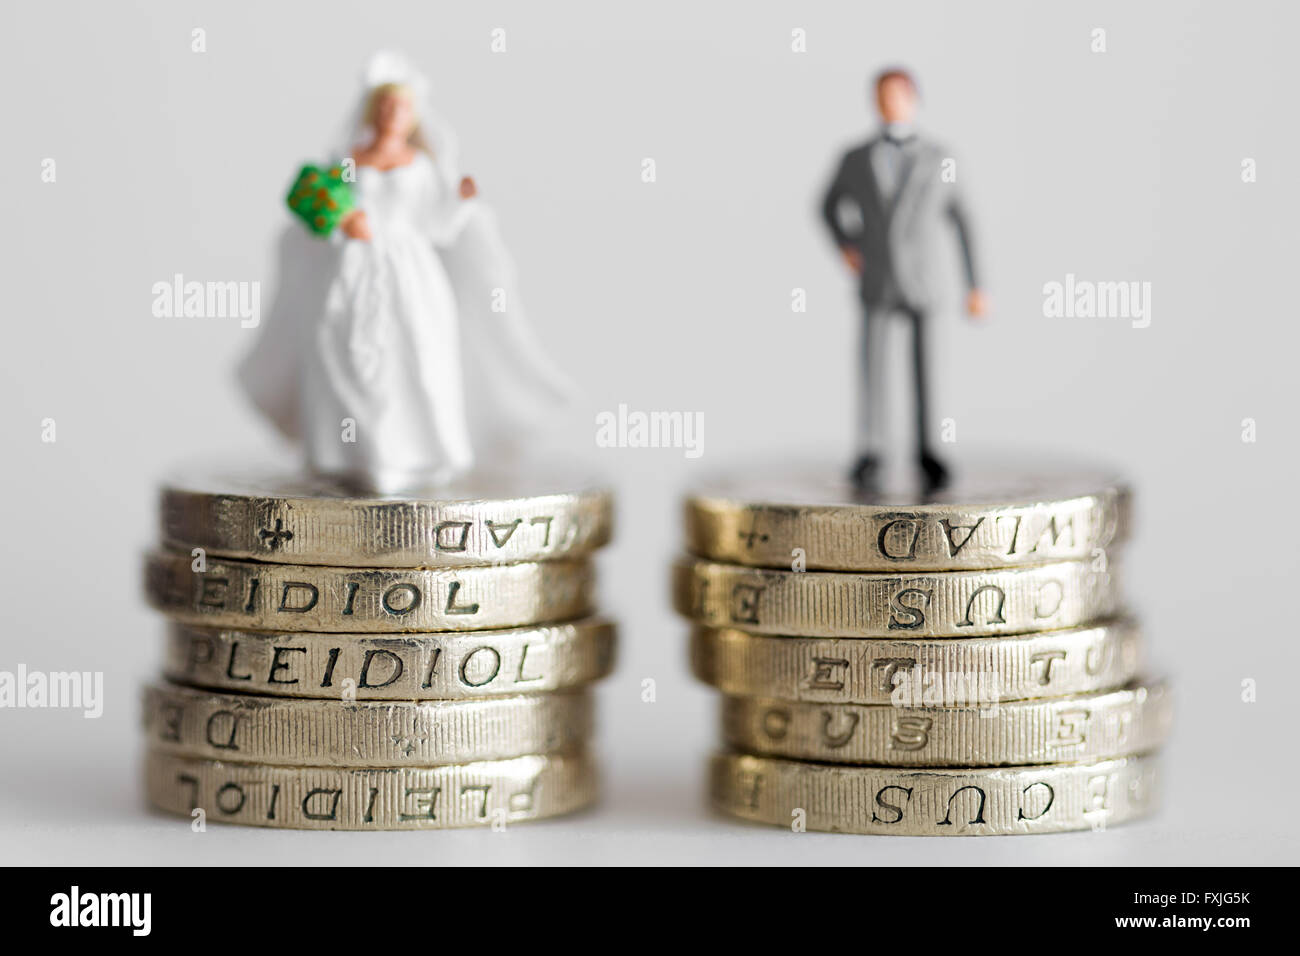 Close up/macro model stock photo depicting married husband and wife on £1 pound coin stack - Stock Image